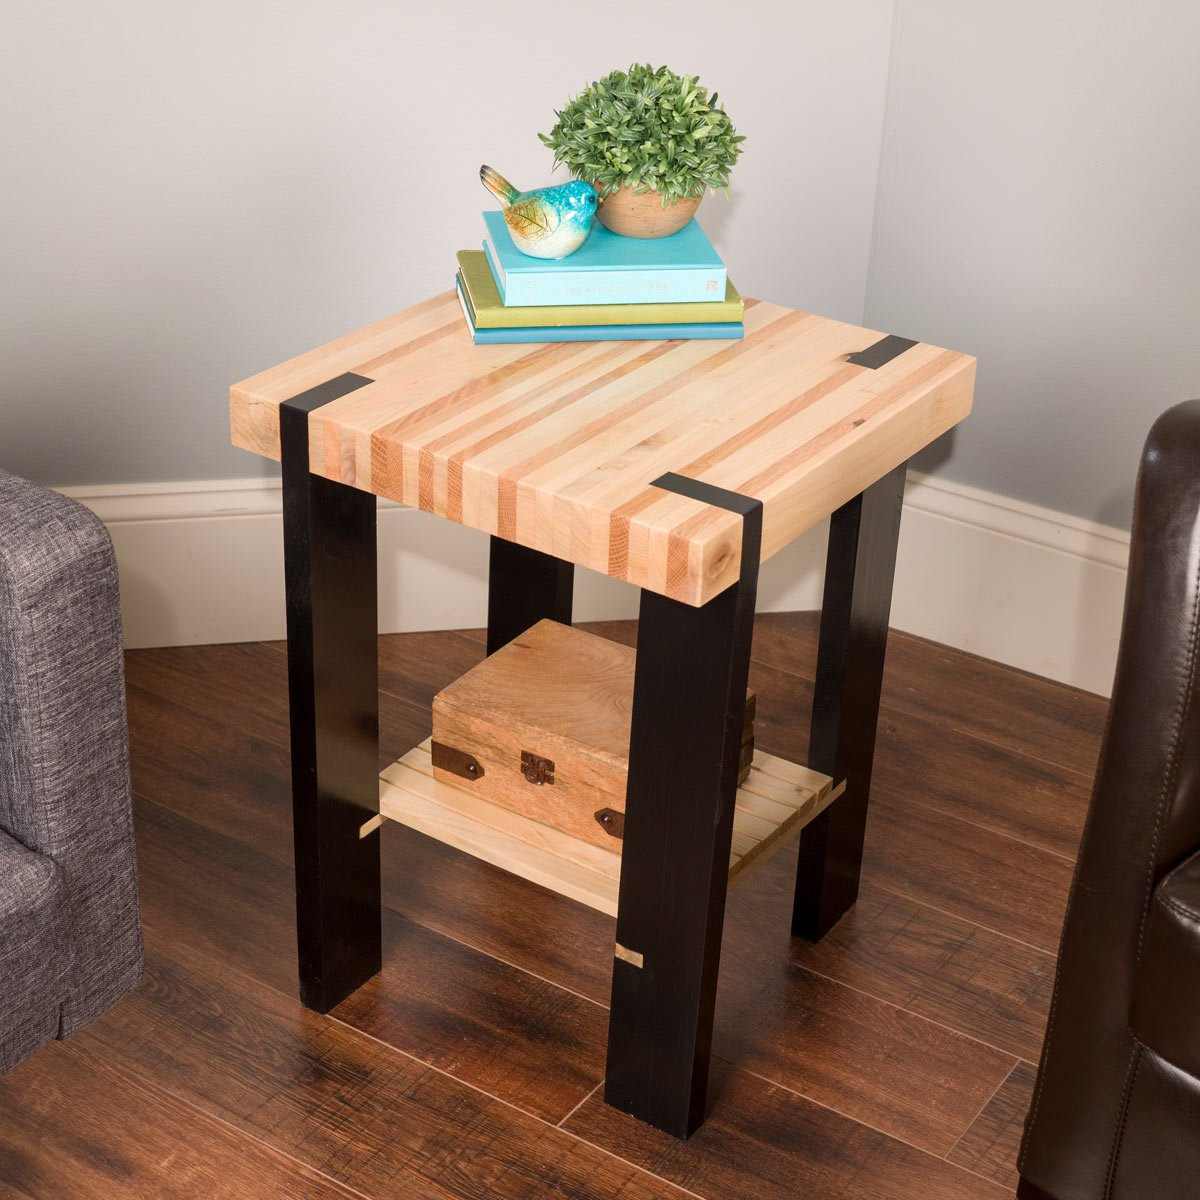 saturday morning work how build pallet side table the modernsidetable lede furniture end painted black coffee glass outdoor layout couch floor lamp ideas homemade dog crate cover